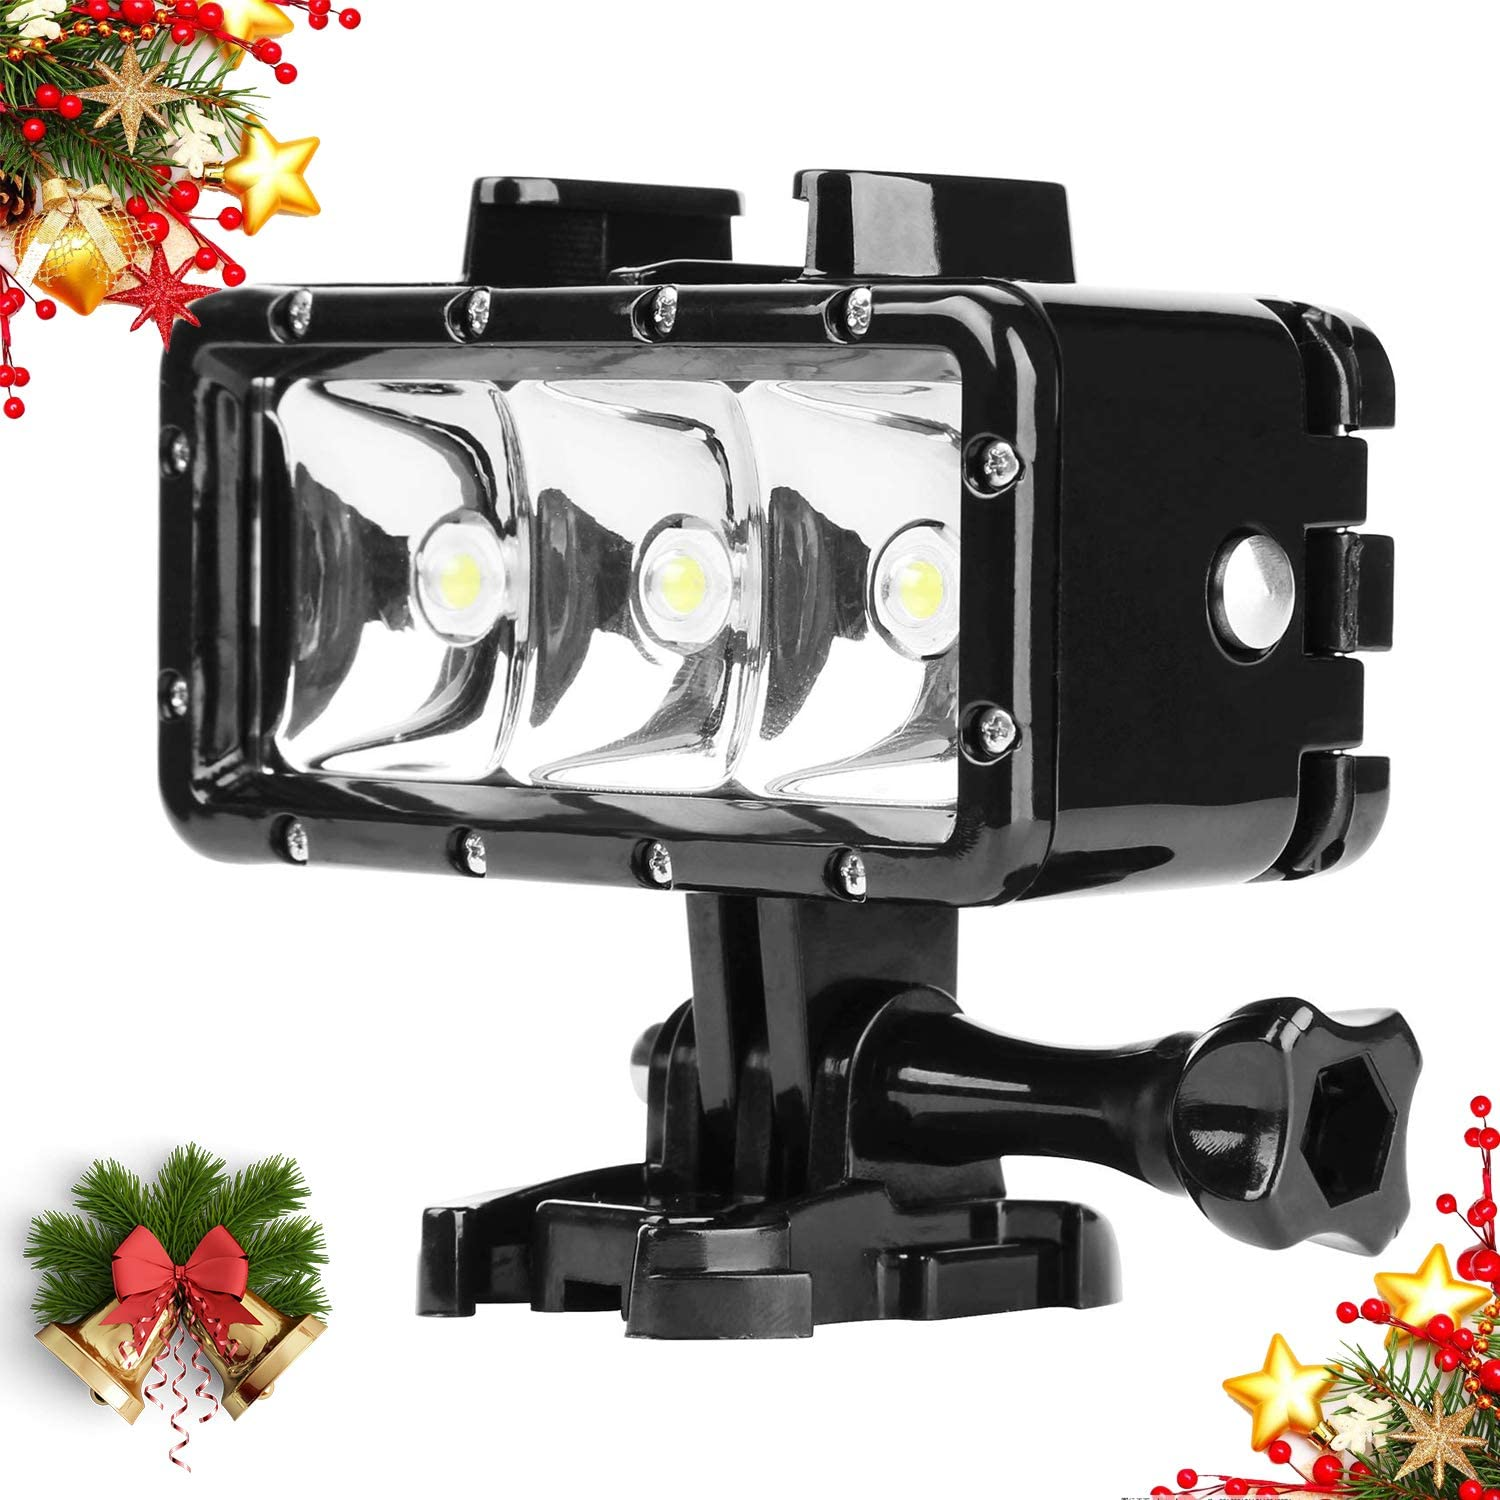 Underwater Lights Dive Light Mojosketch High Power Dimmable Waterproof LED Video Light Waterproof 30m for GoPro Hero 7 6 5 4 3+ Action Camera, Campark Underwater Photographic Lighting System